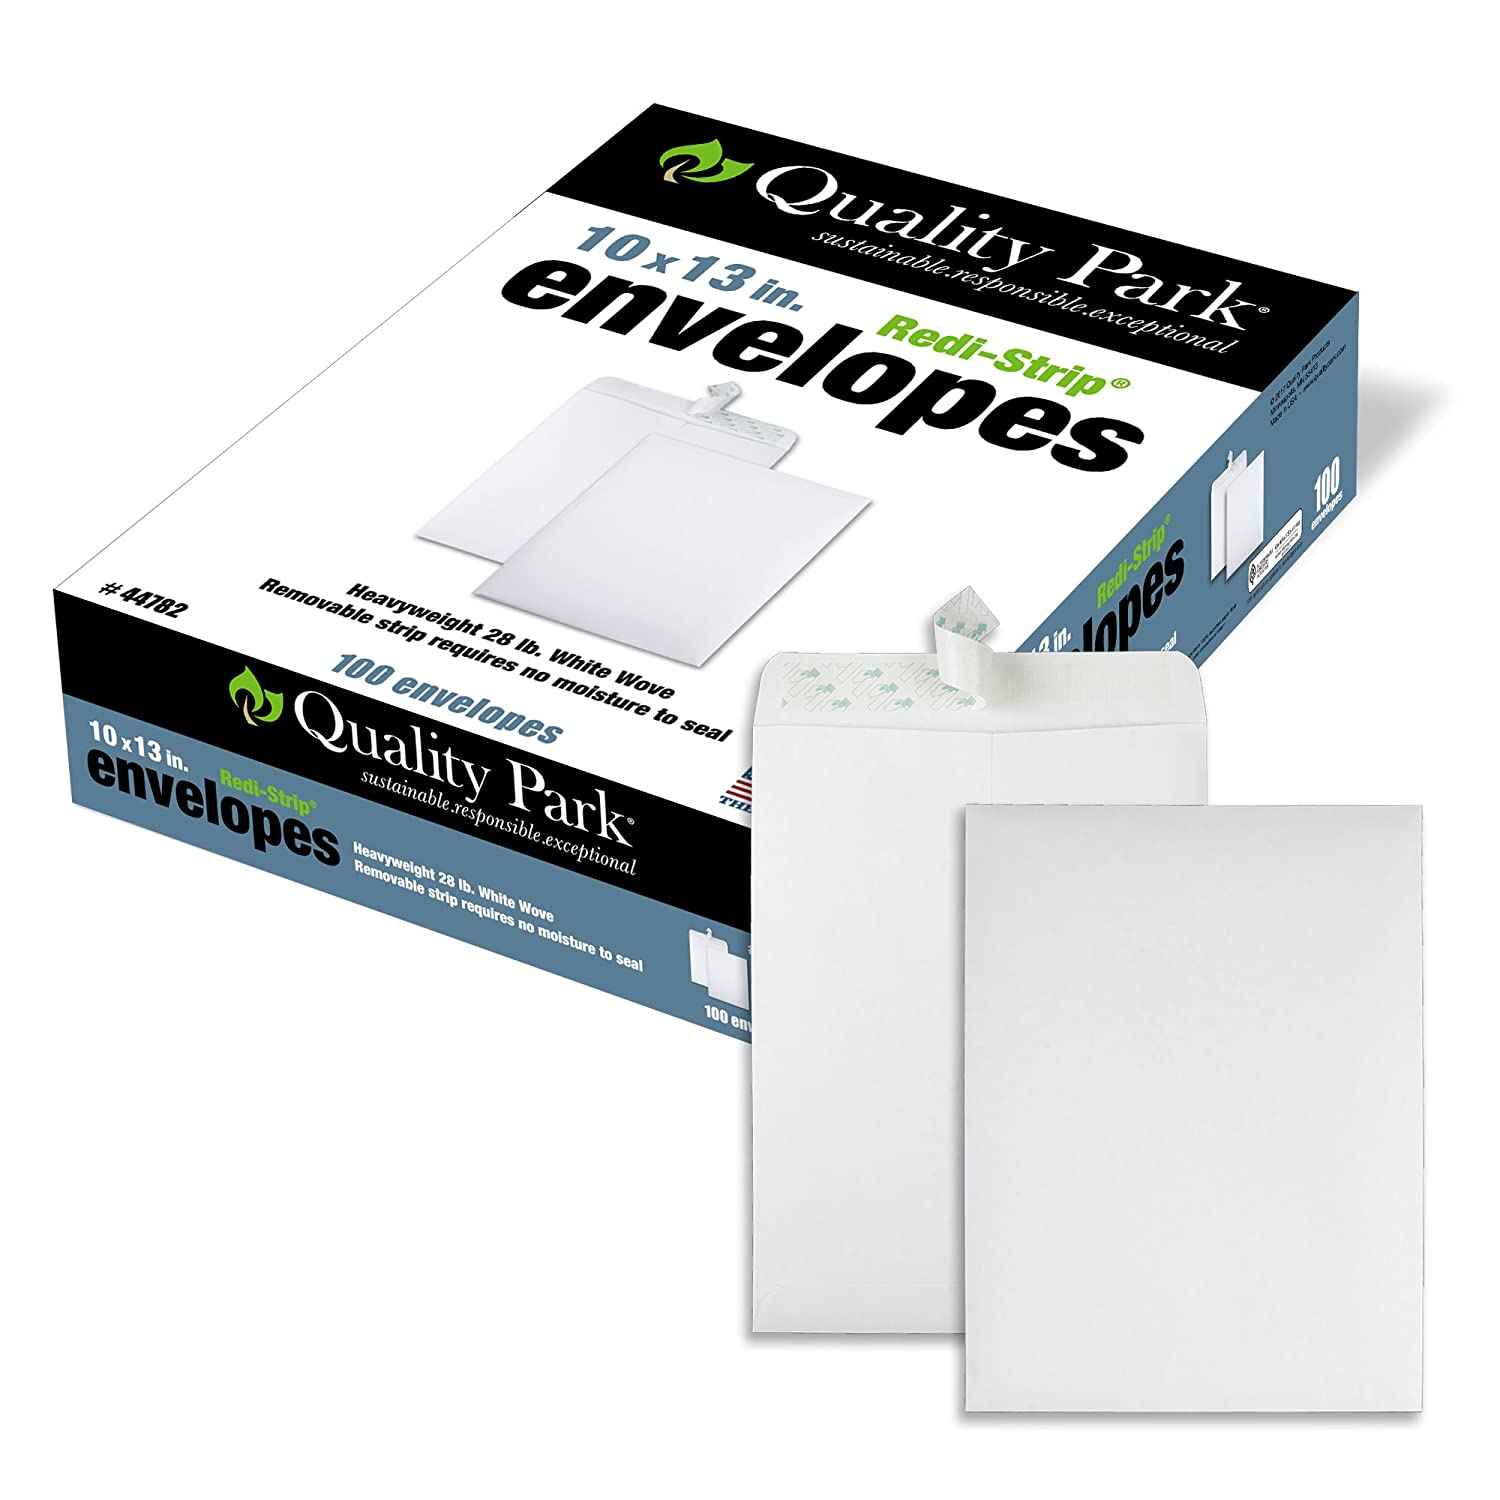 Quality Park Catalog Envelopes, 10 x 13 inches, Redi-Seal, 100 Count (44782)